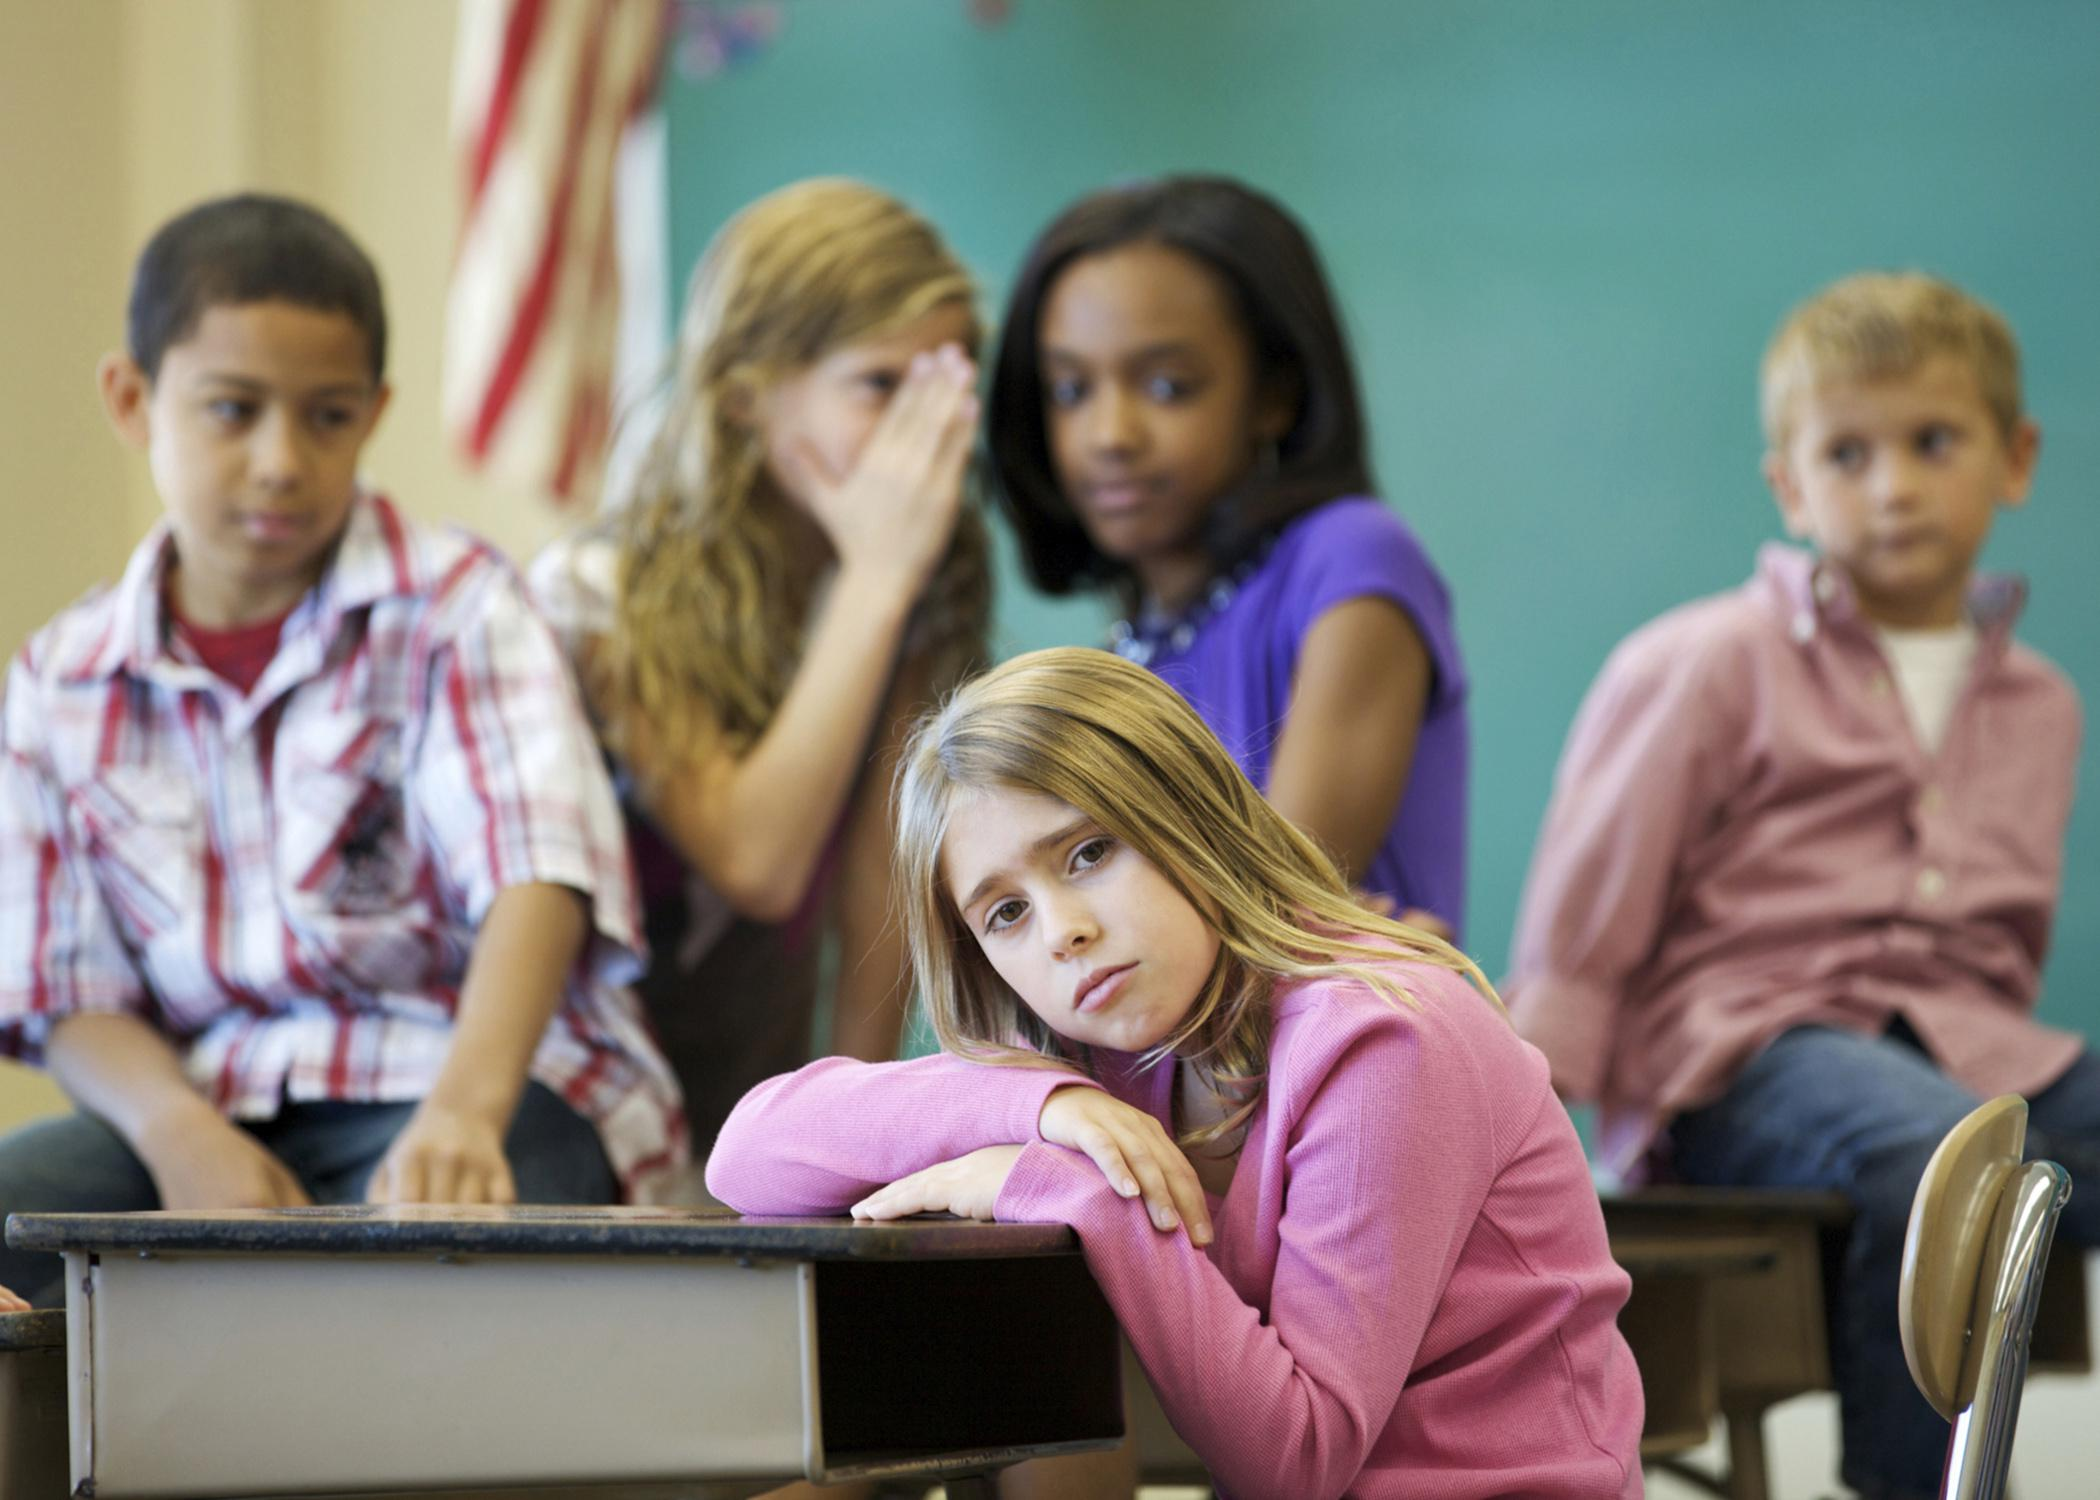 As school starts back, parents and other adults should be on the lookout for signs that a child could be involved in bullying. Bullying can cause lasting effects for bullies, victims of bullies and bystanders. (Photo by Thinkstock/iStockphoto)